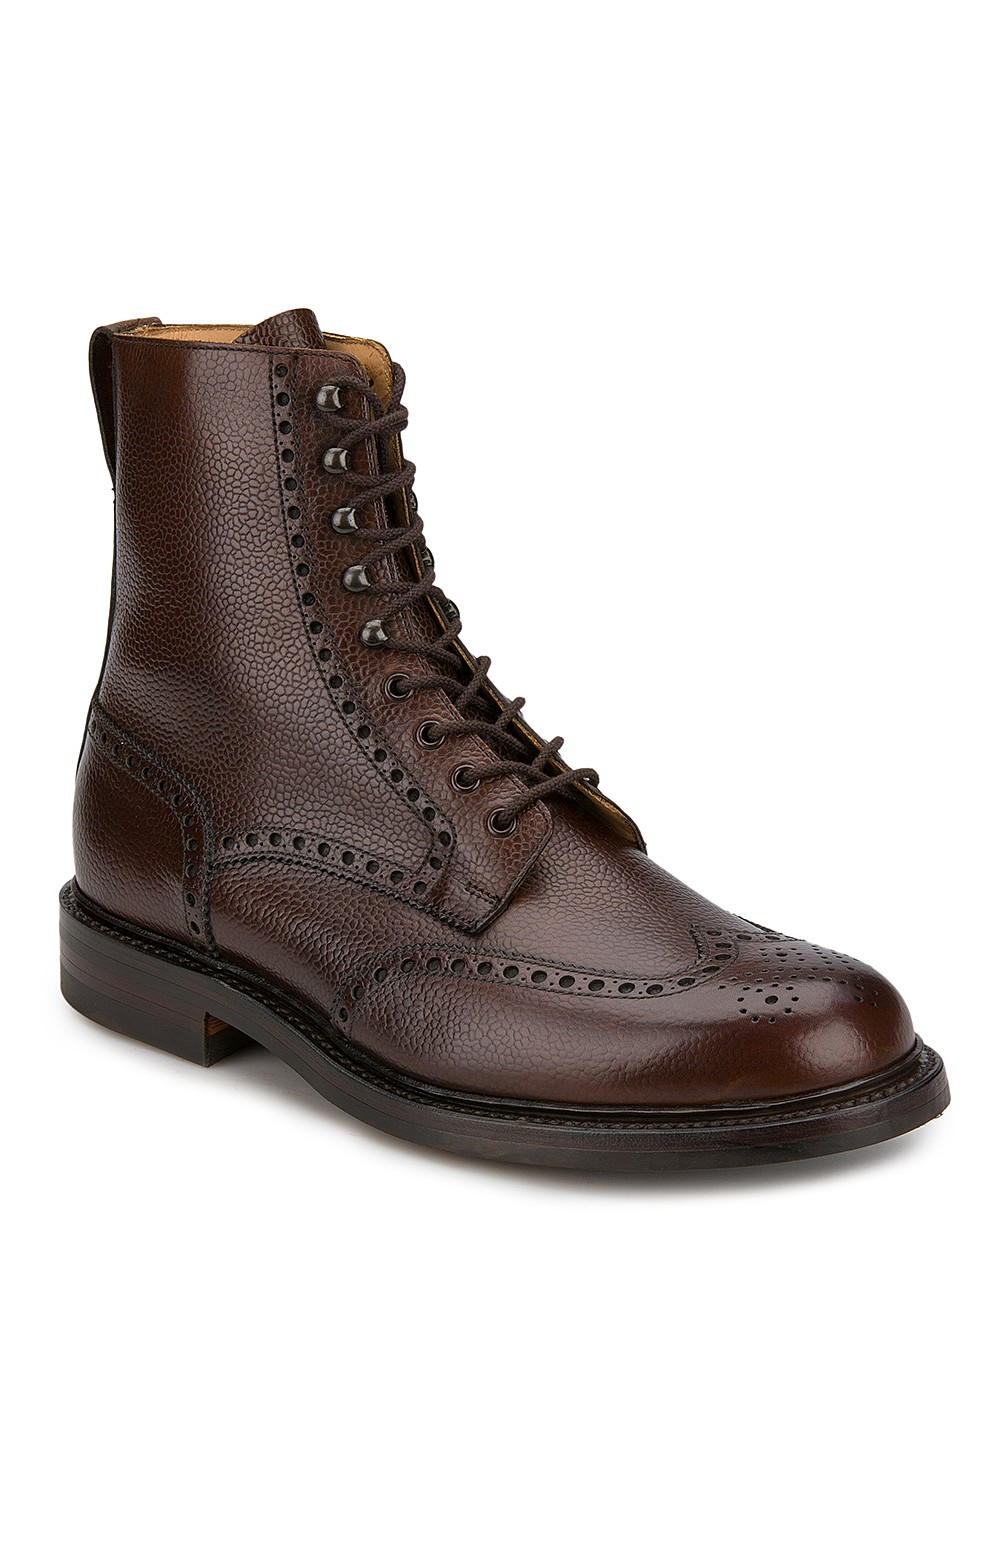 d65baa94db47df Mens Crockett And Jones Islay Leather Boot   Men's Leather Shoes & Boots    House Of Bruar